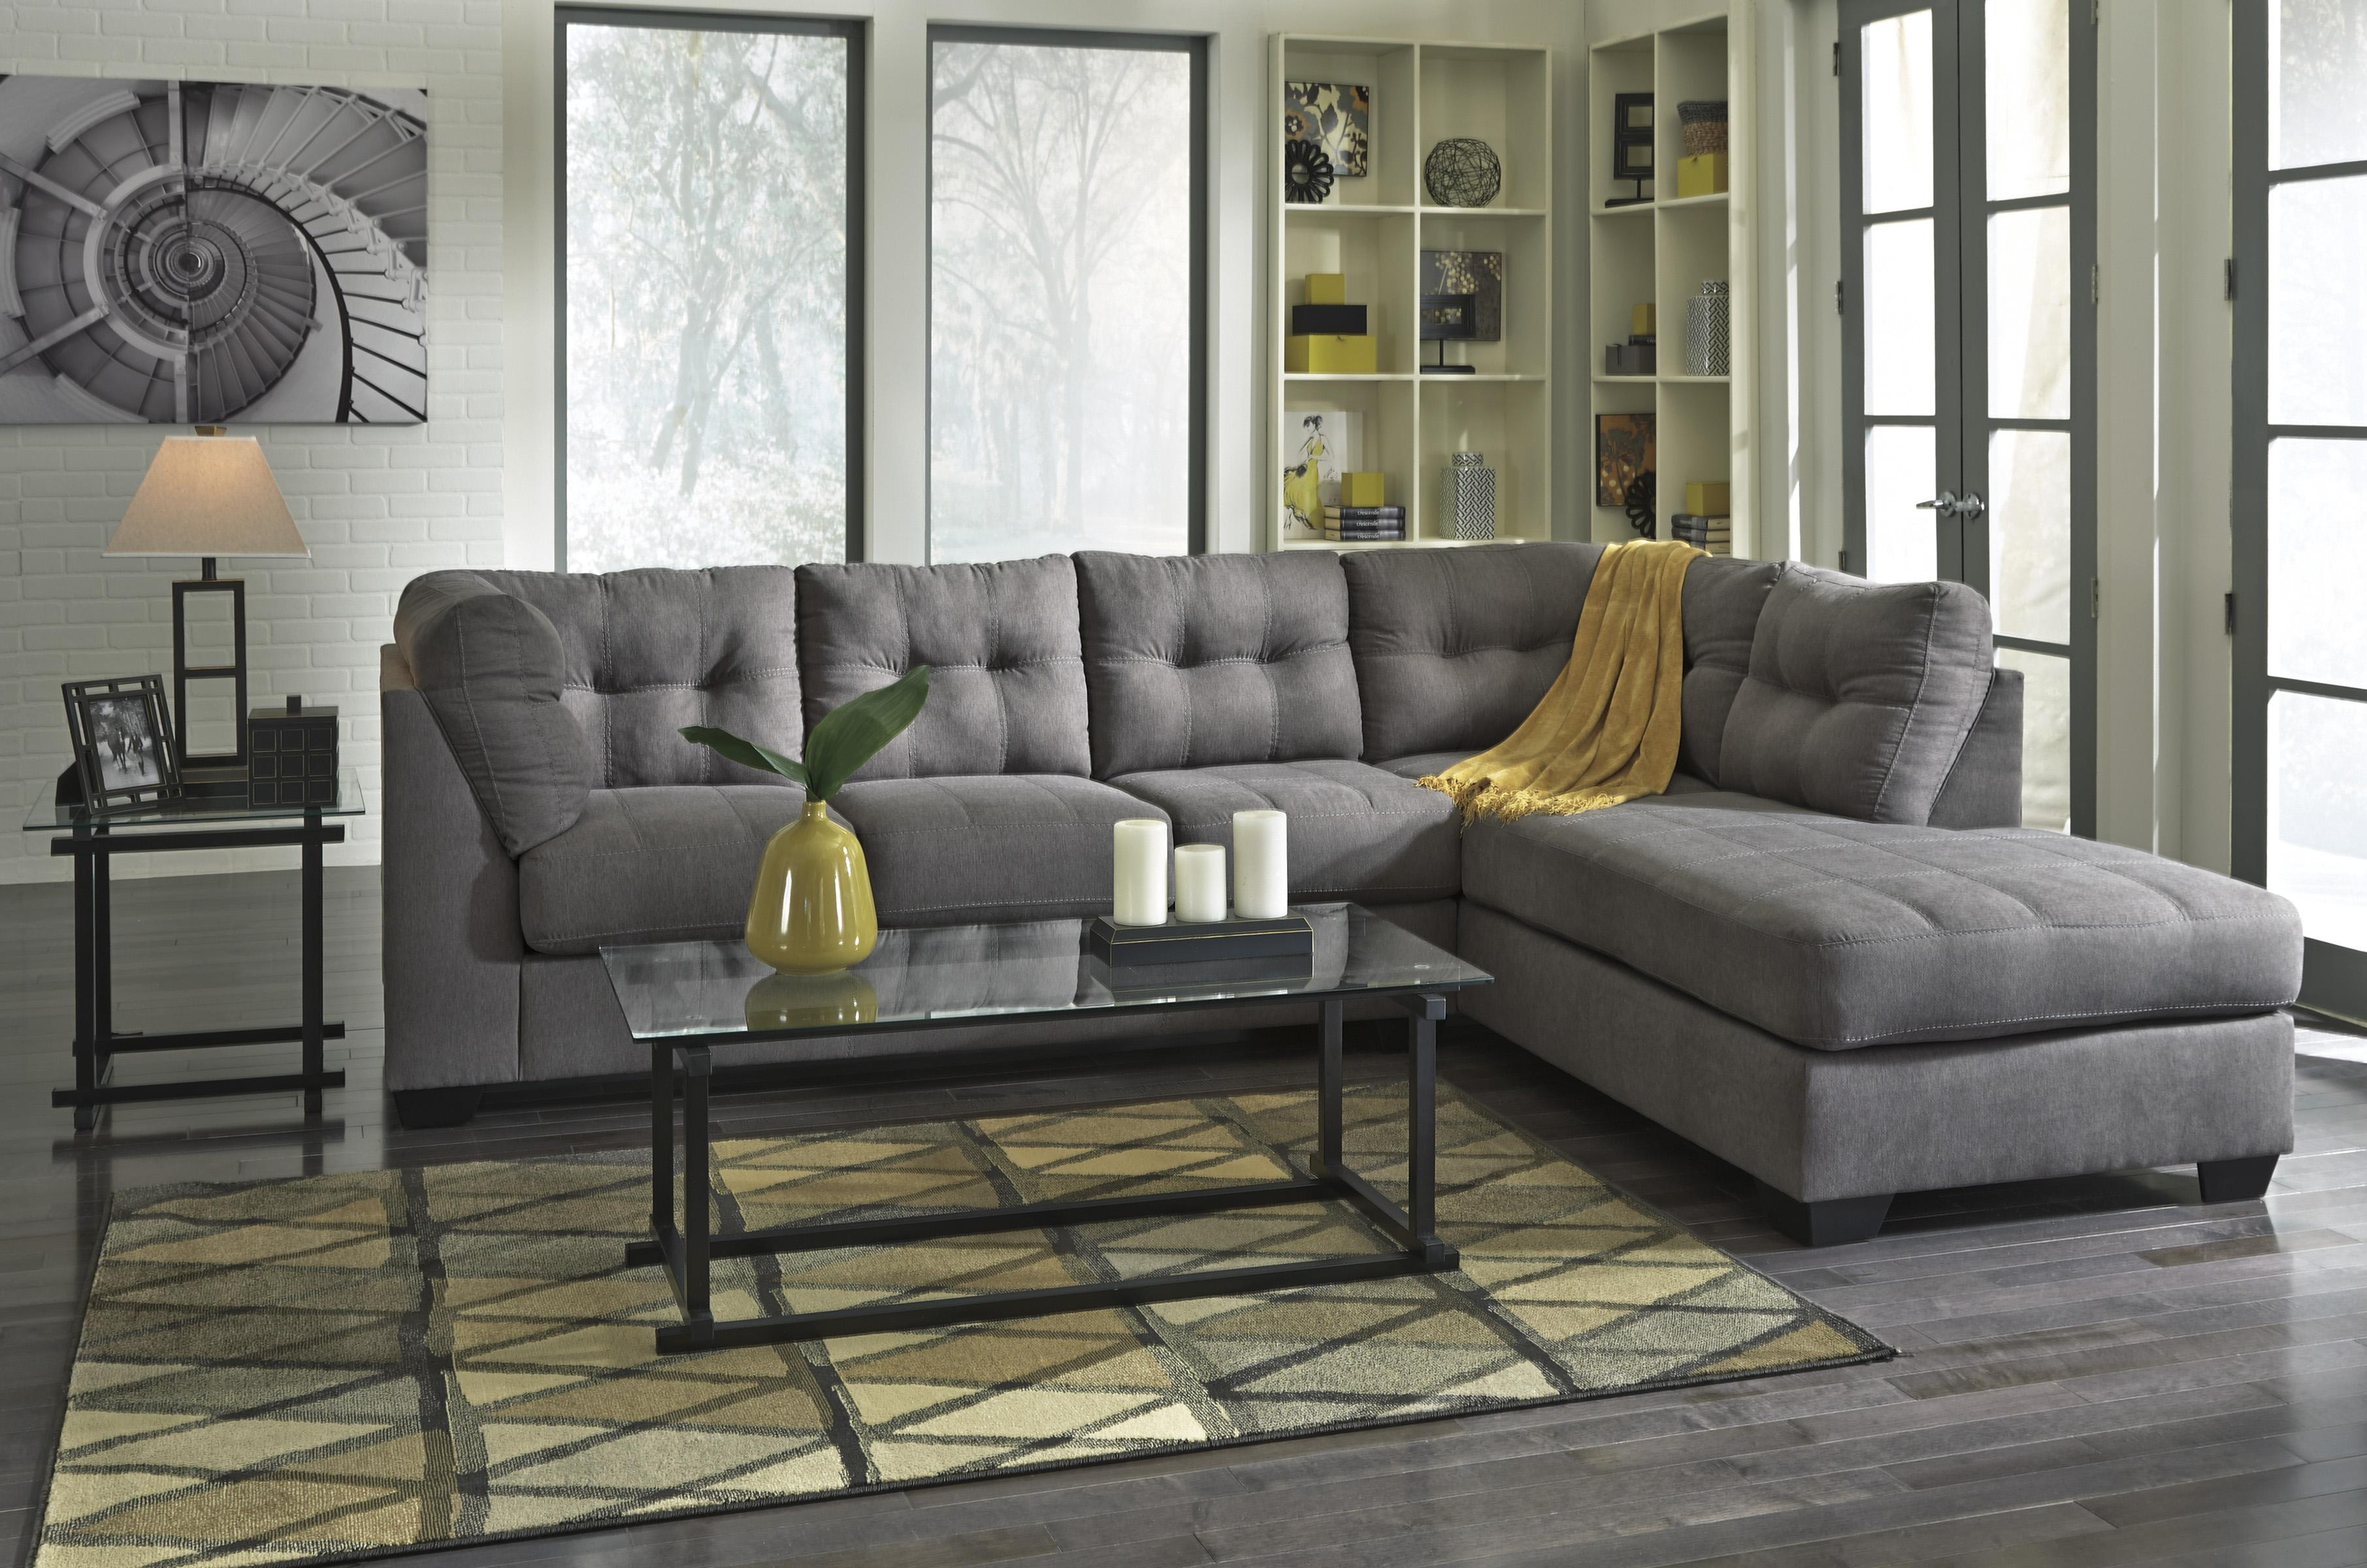 2 piece sectional w sleeper sofa right chaise by for 2 piece sectional with chaise lounge